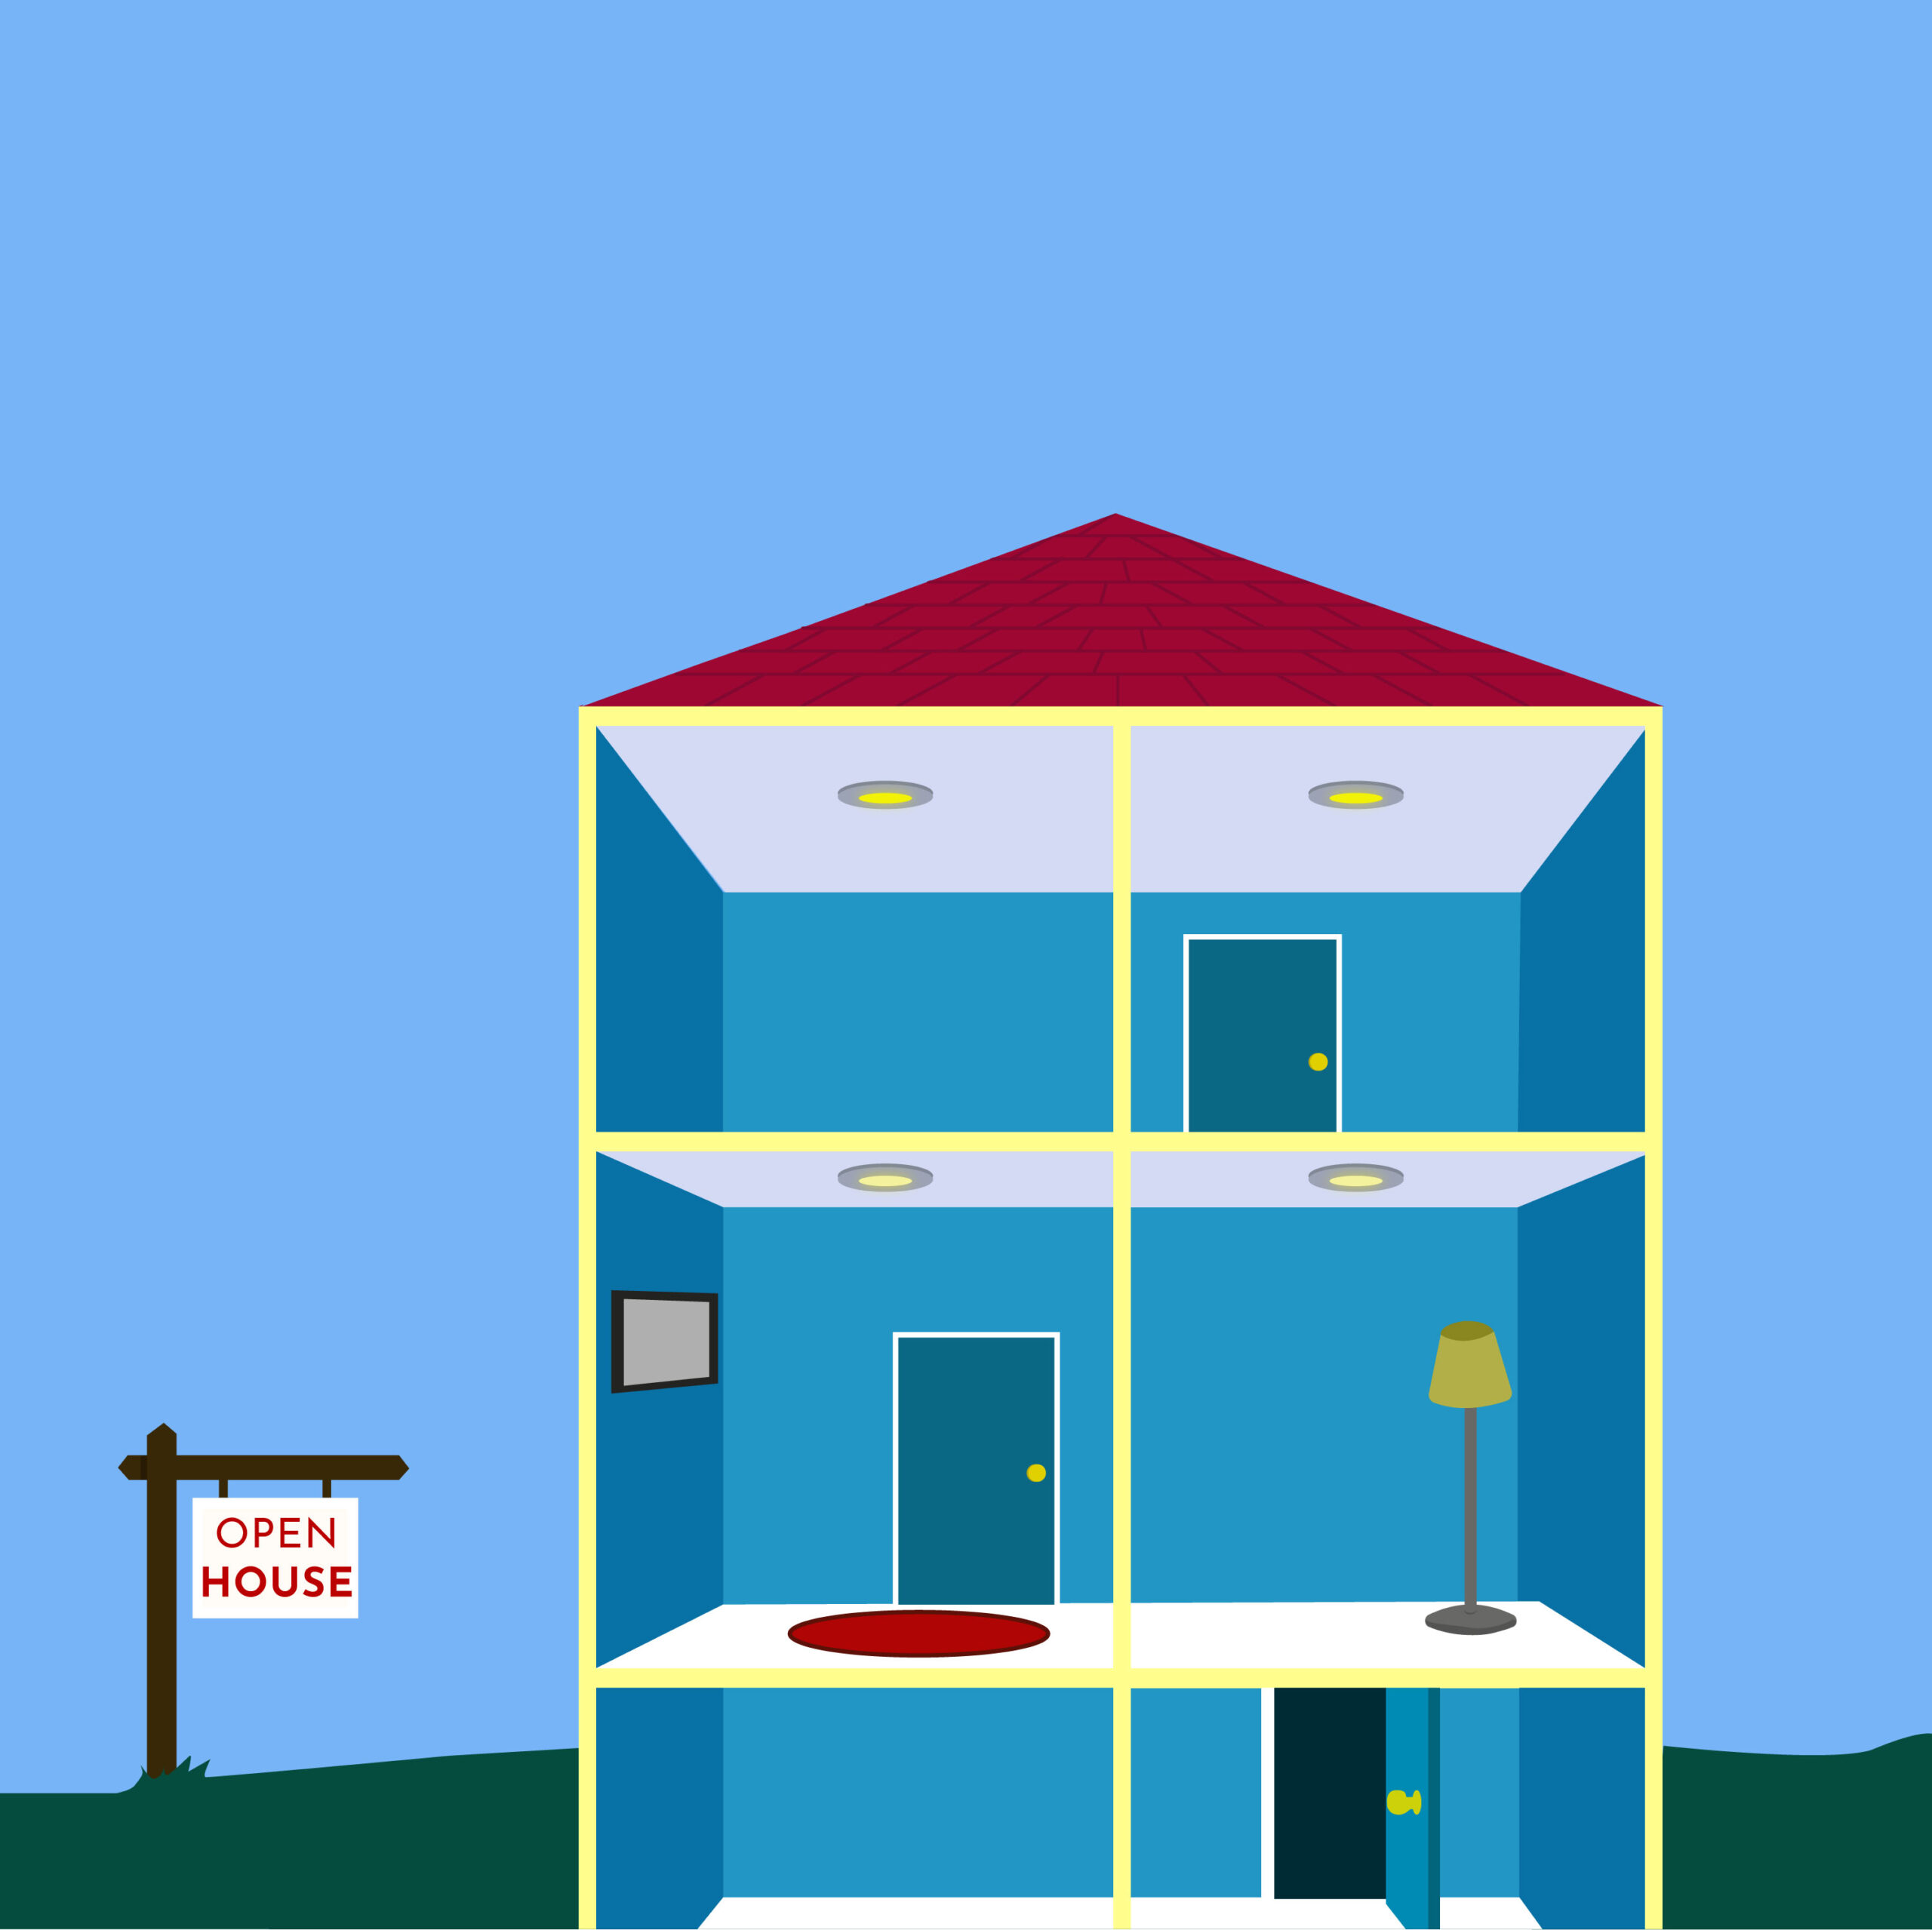 Real Estate article illustration by Rita Azar for 360 magazine